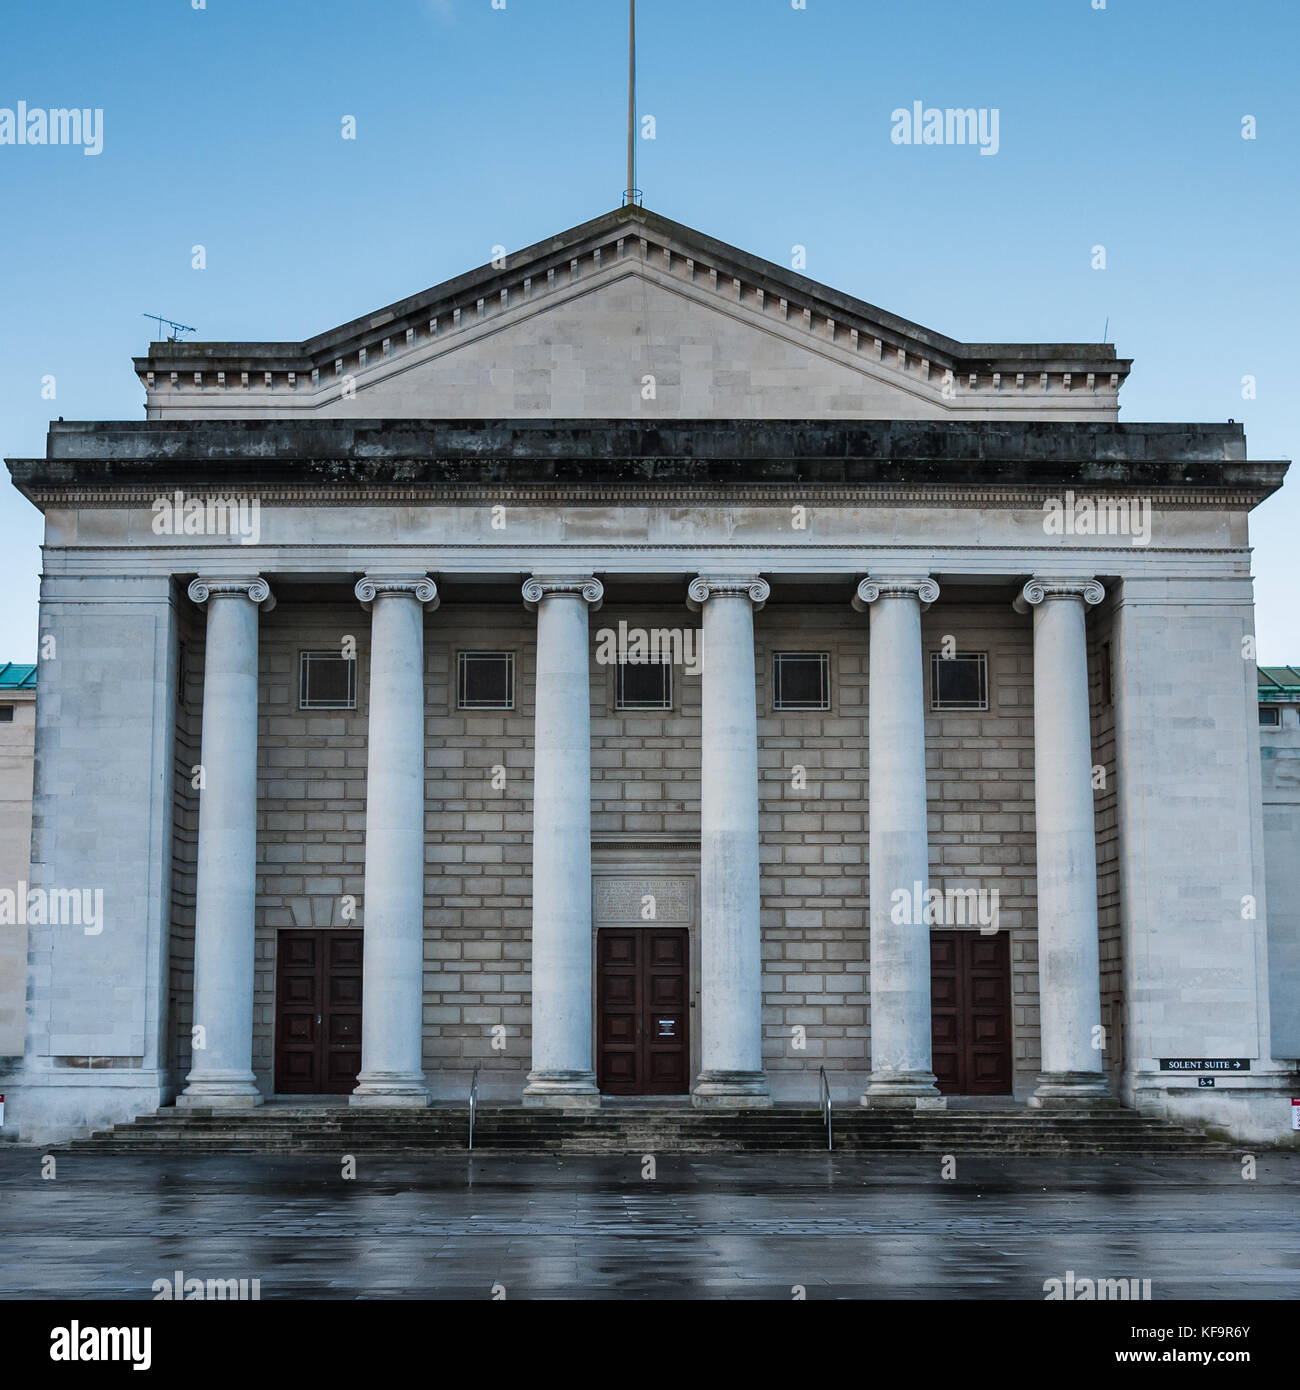 A shot of the facade of Southampton Guildhall. - Stock Image